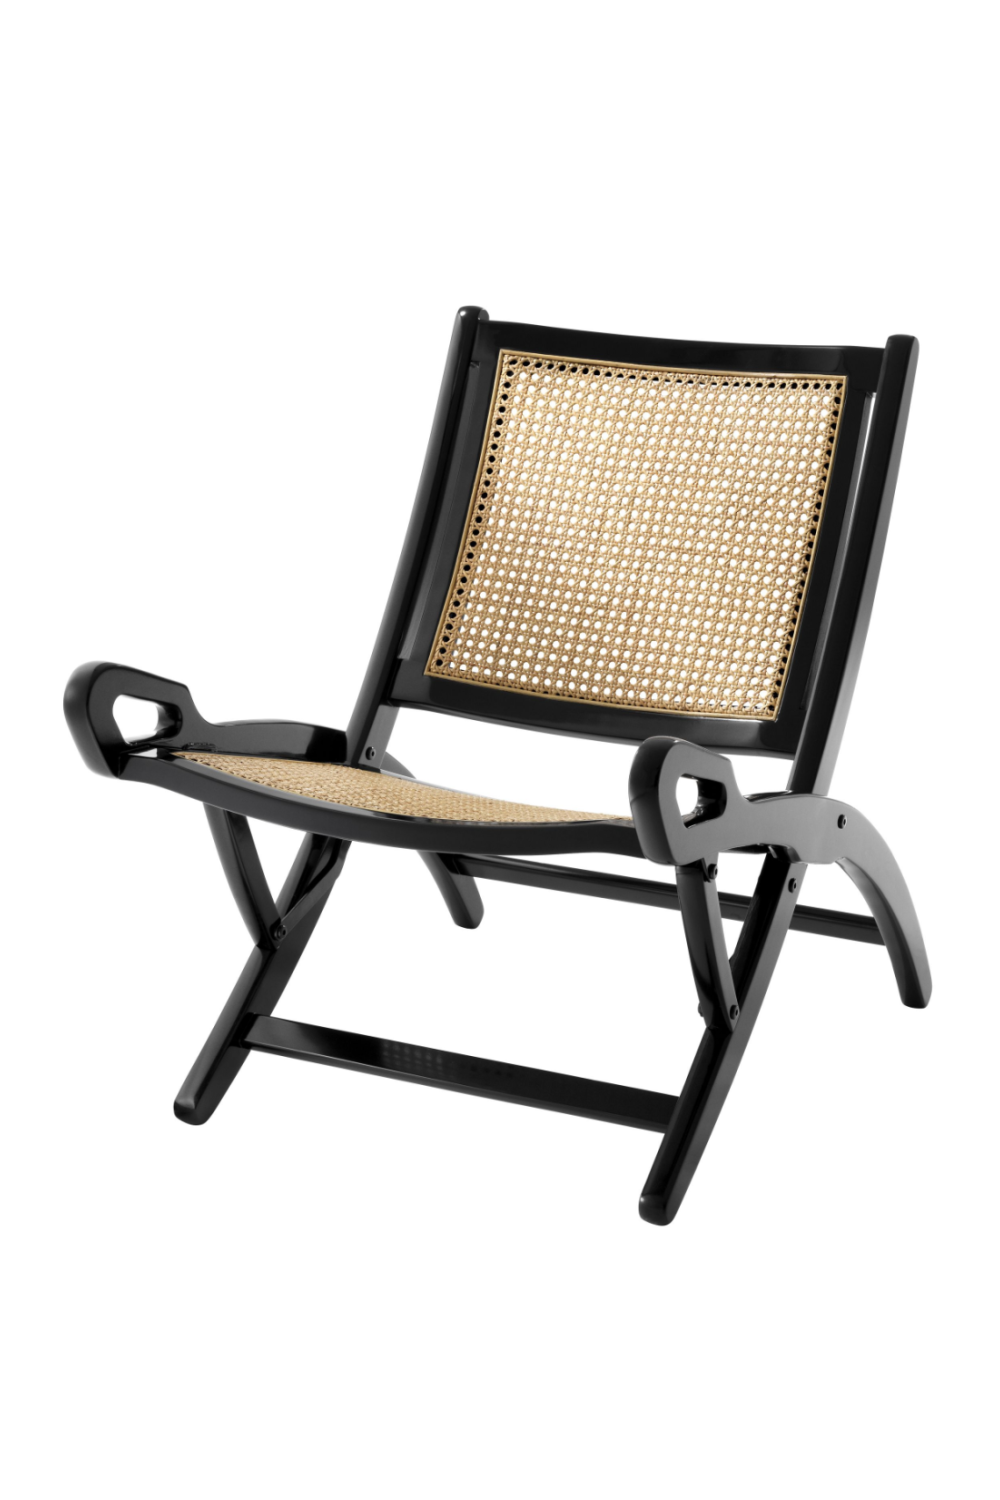 Natural Cane Folding Chair | Eichholtz Dimono | #1 Eichholtz Retailer